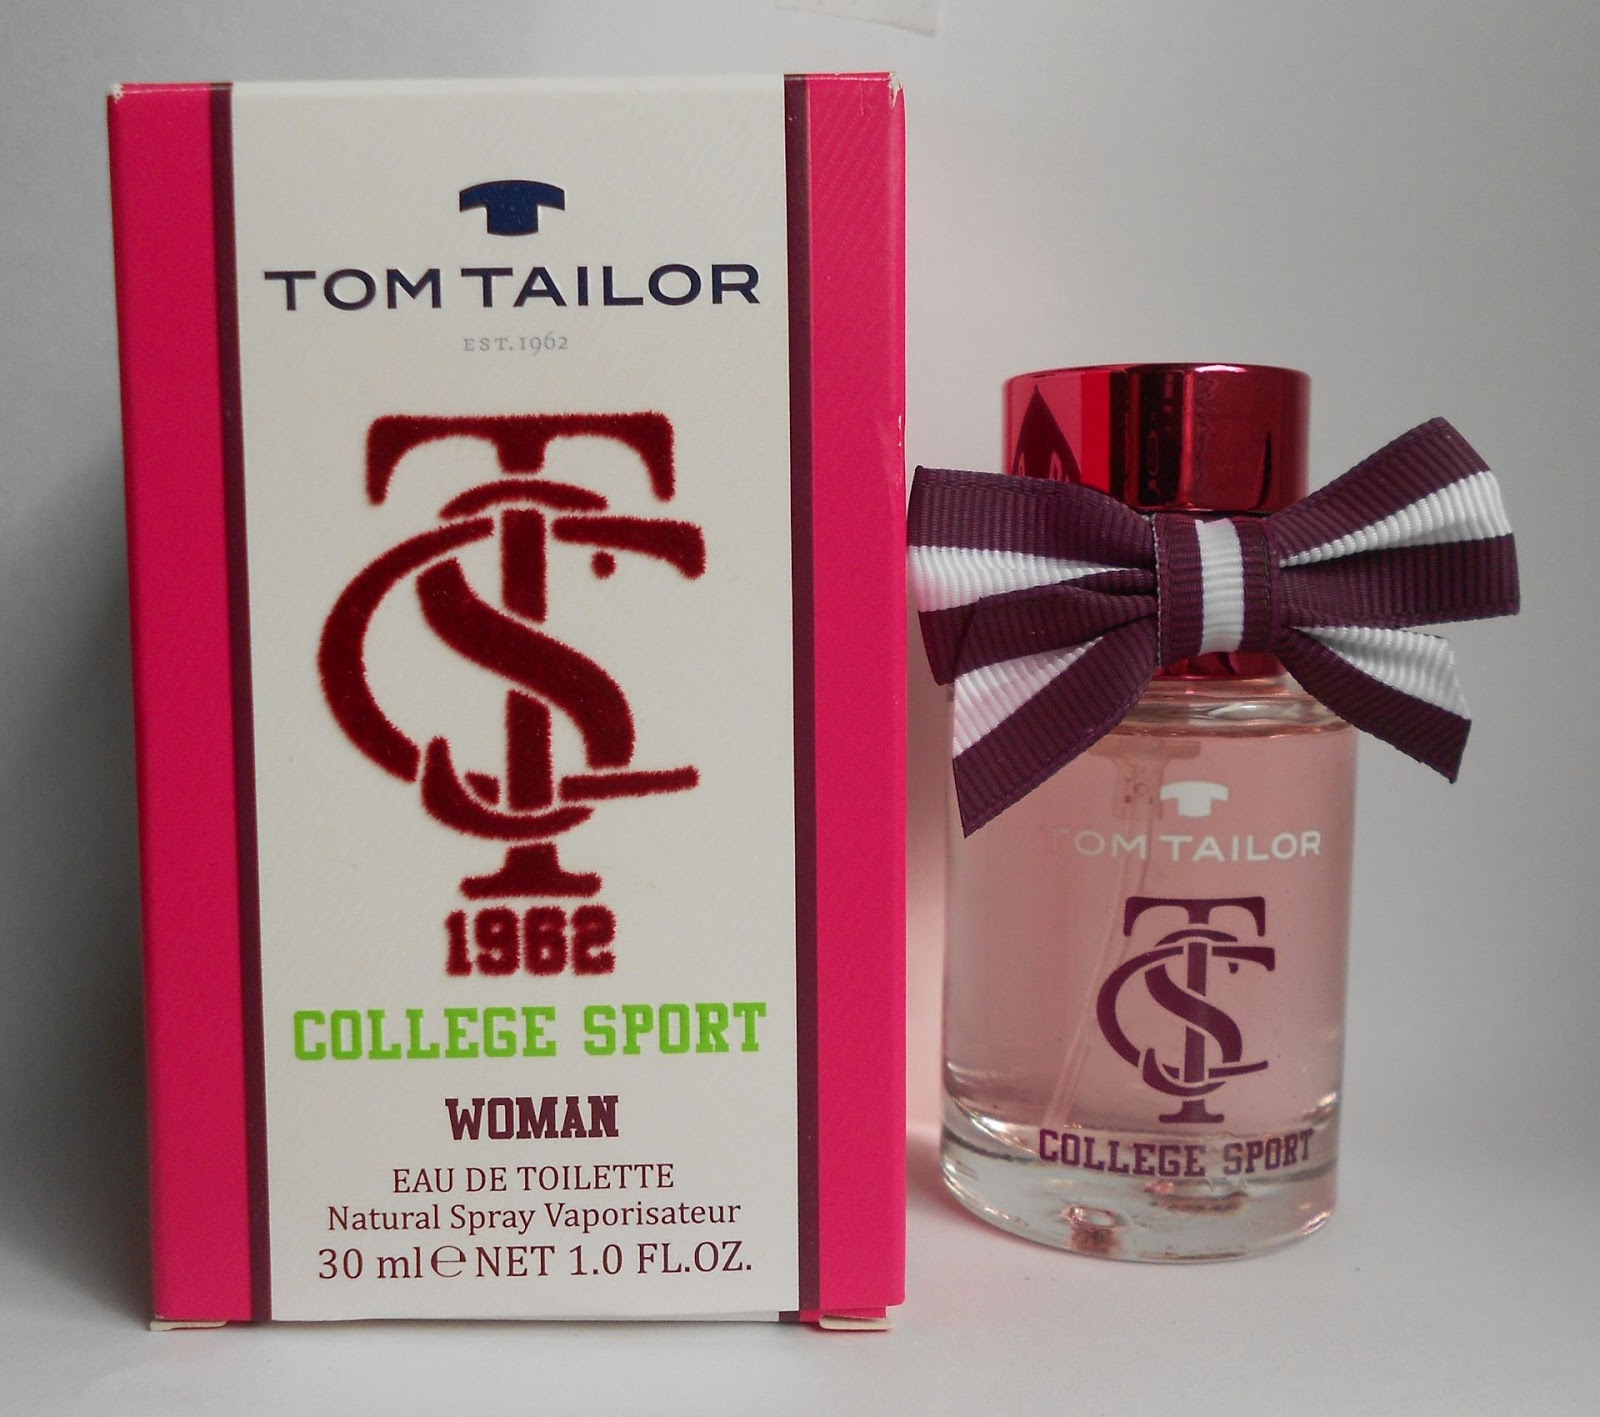 Tom Tailor College Sport Parfum